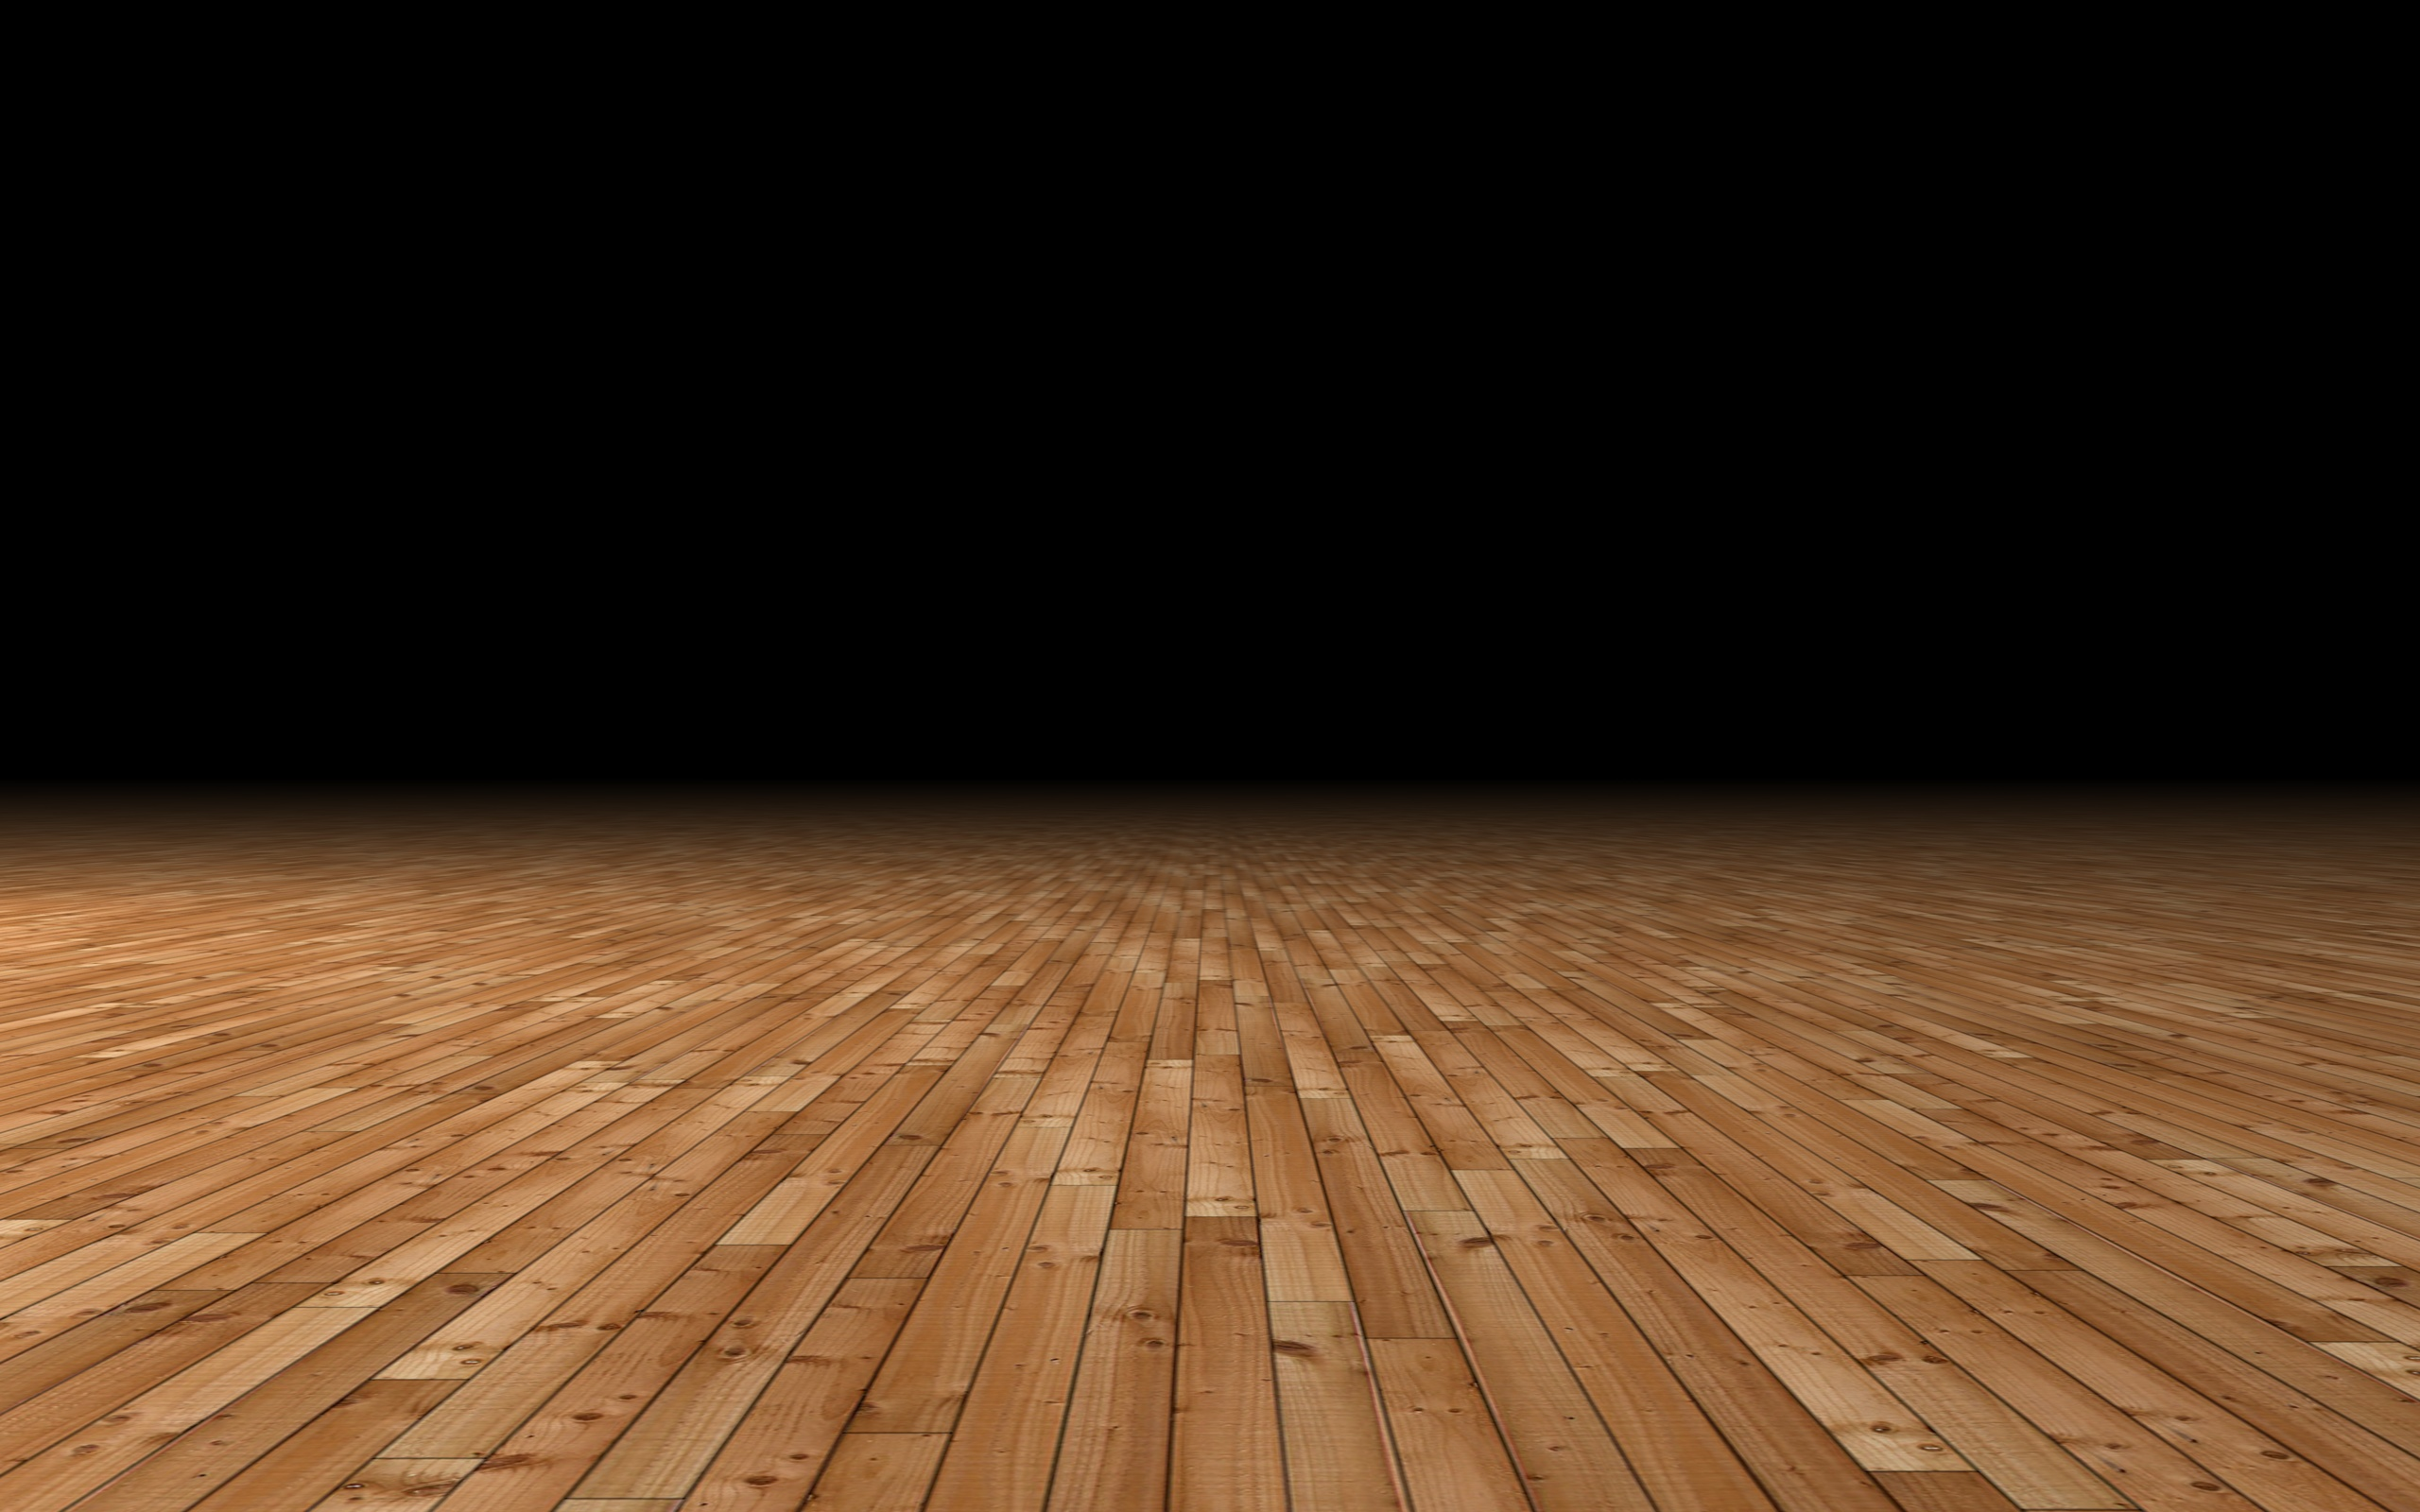 basketball_court_wood_background